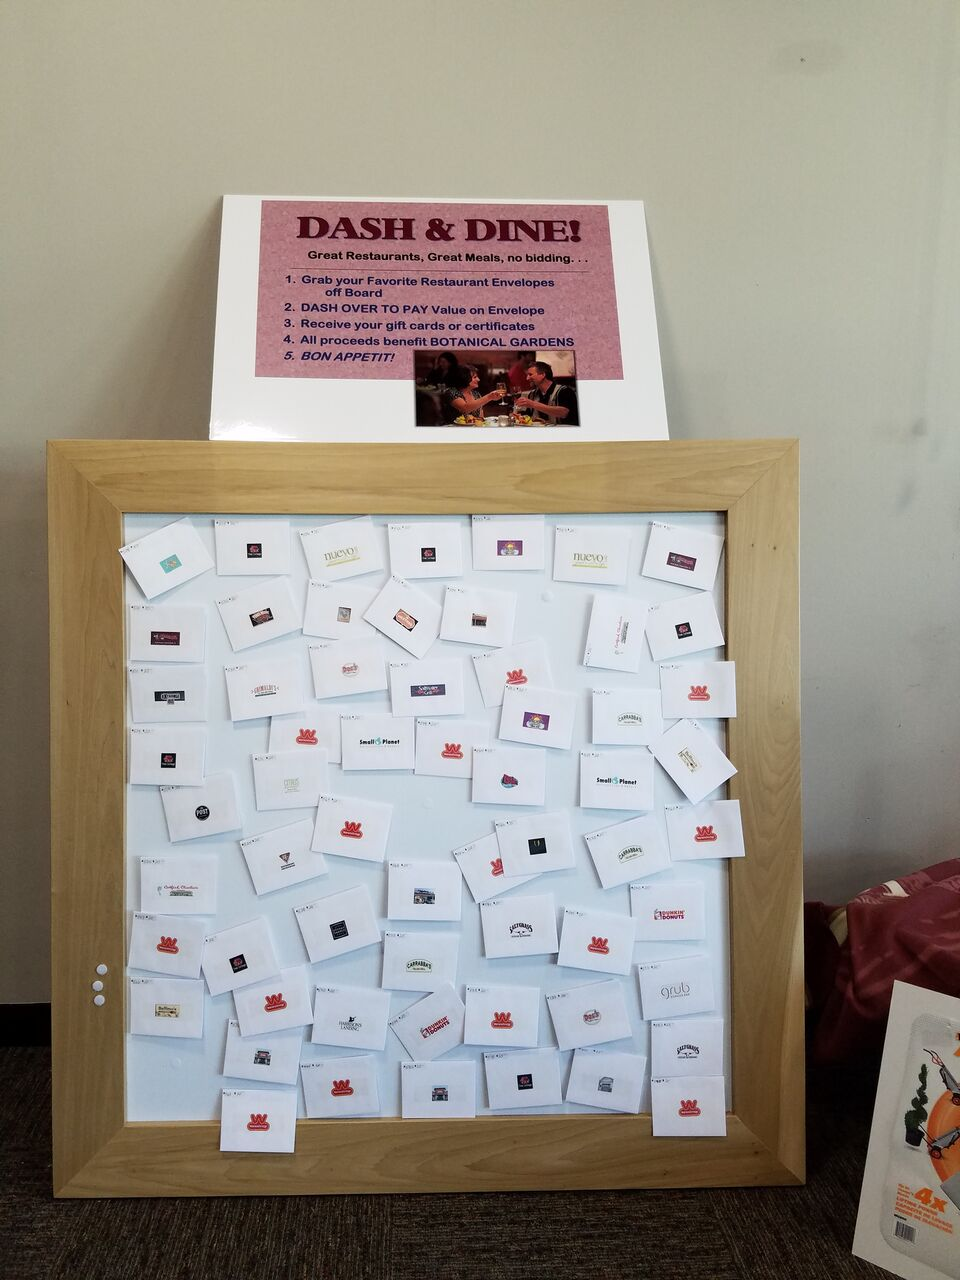 4-Dash-N-Dine Display